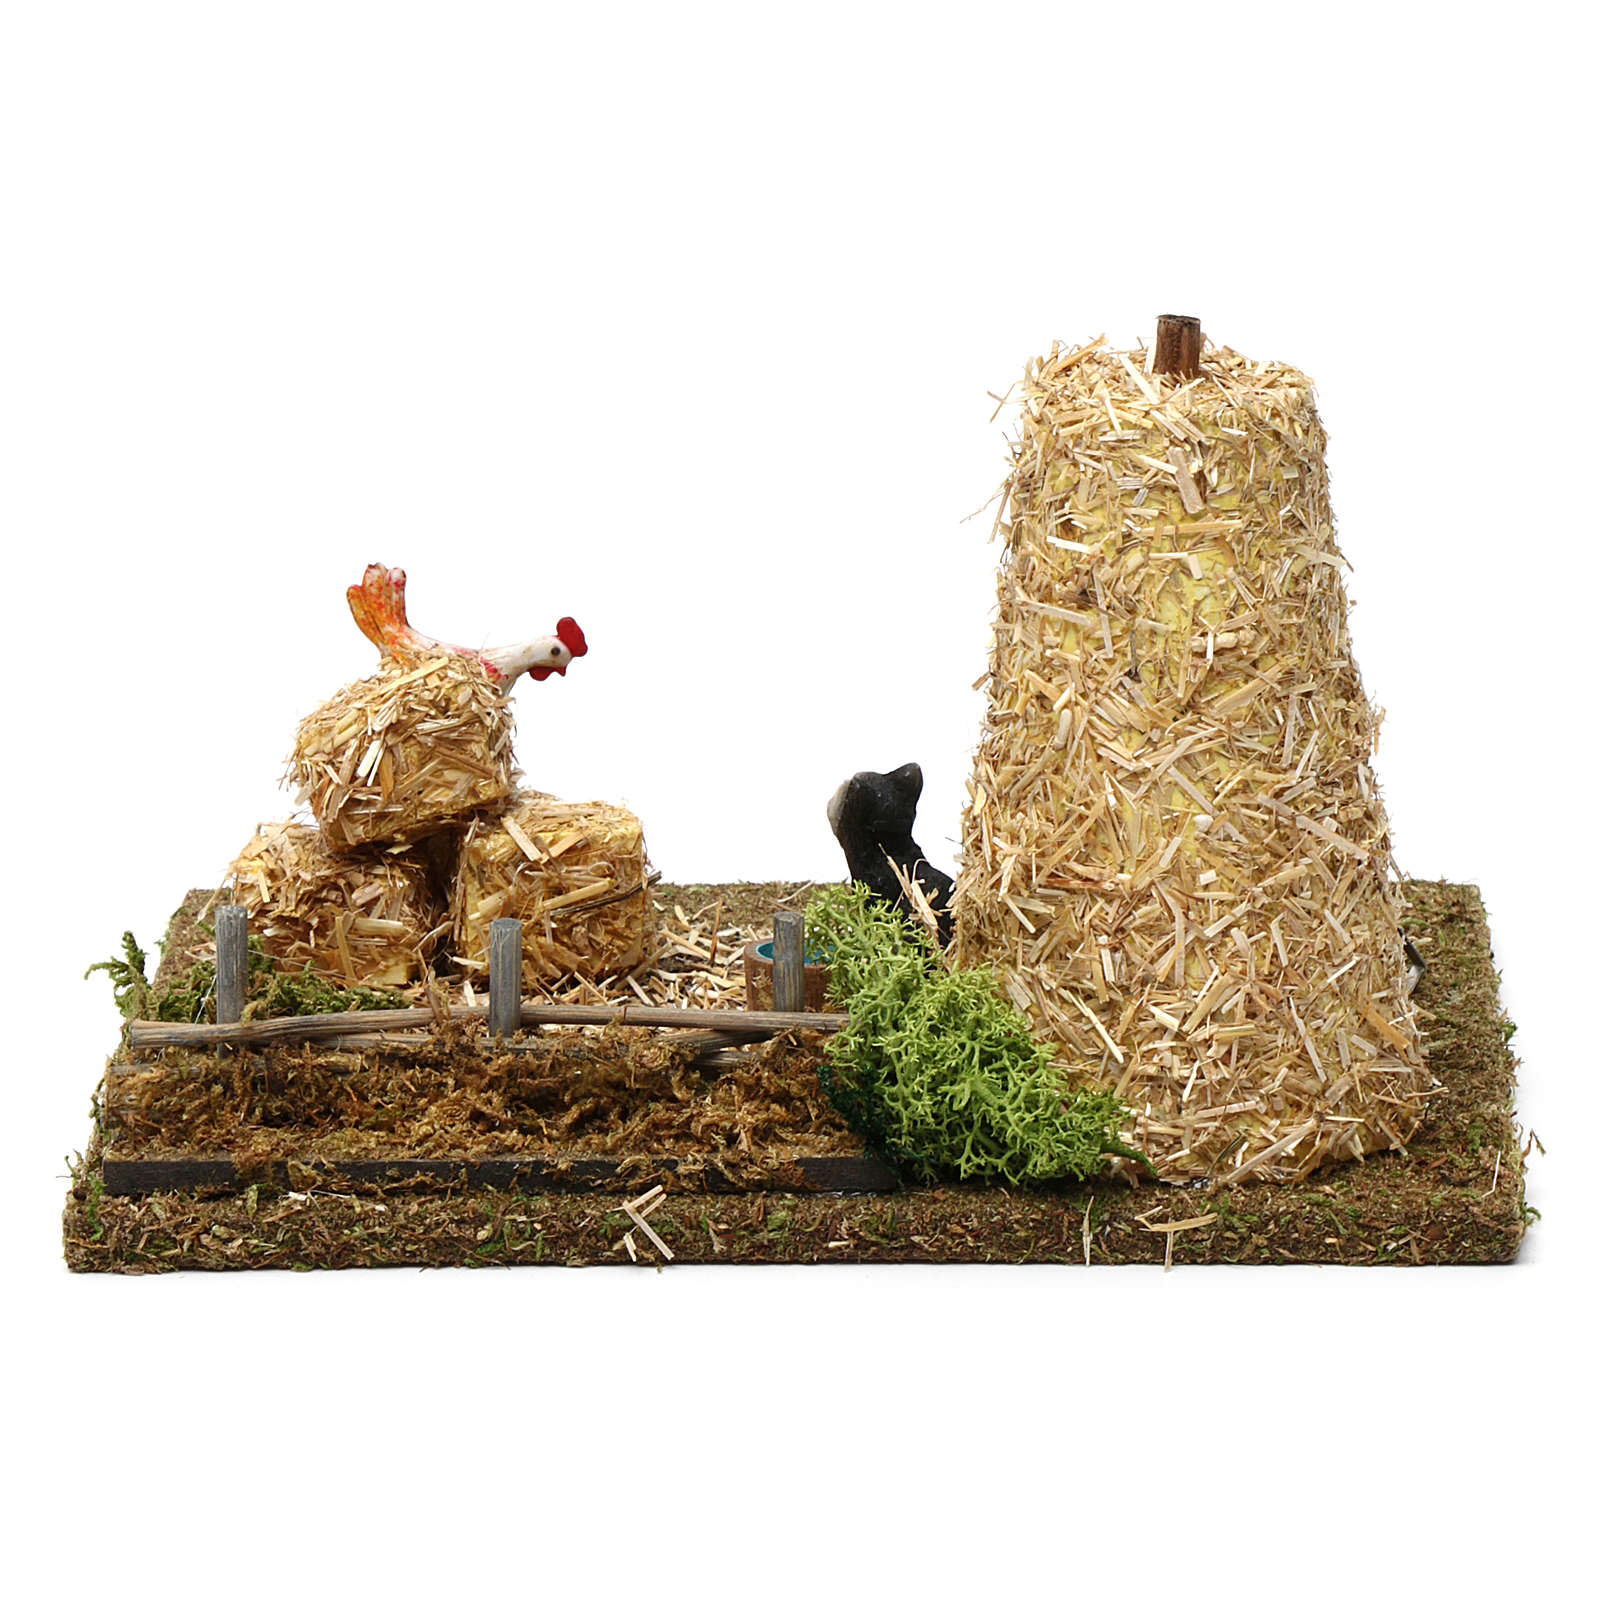 Haystack with cat and cock 10x20x15 cm for Nativity Scene 9-10 cm 3